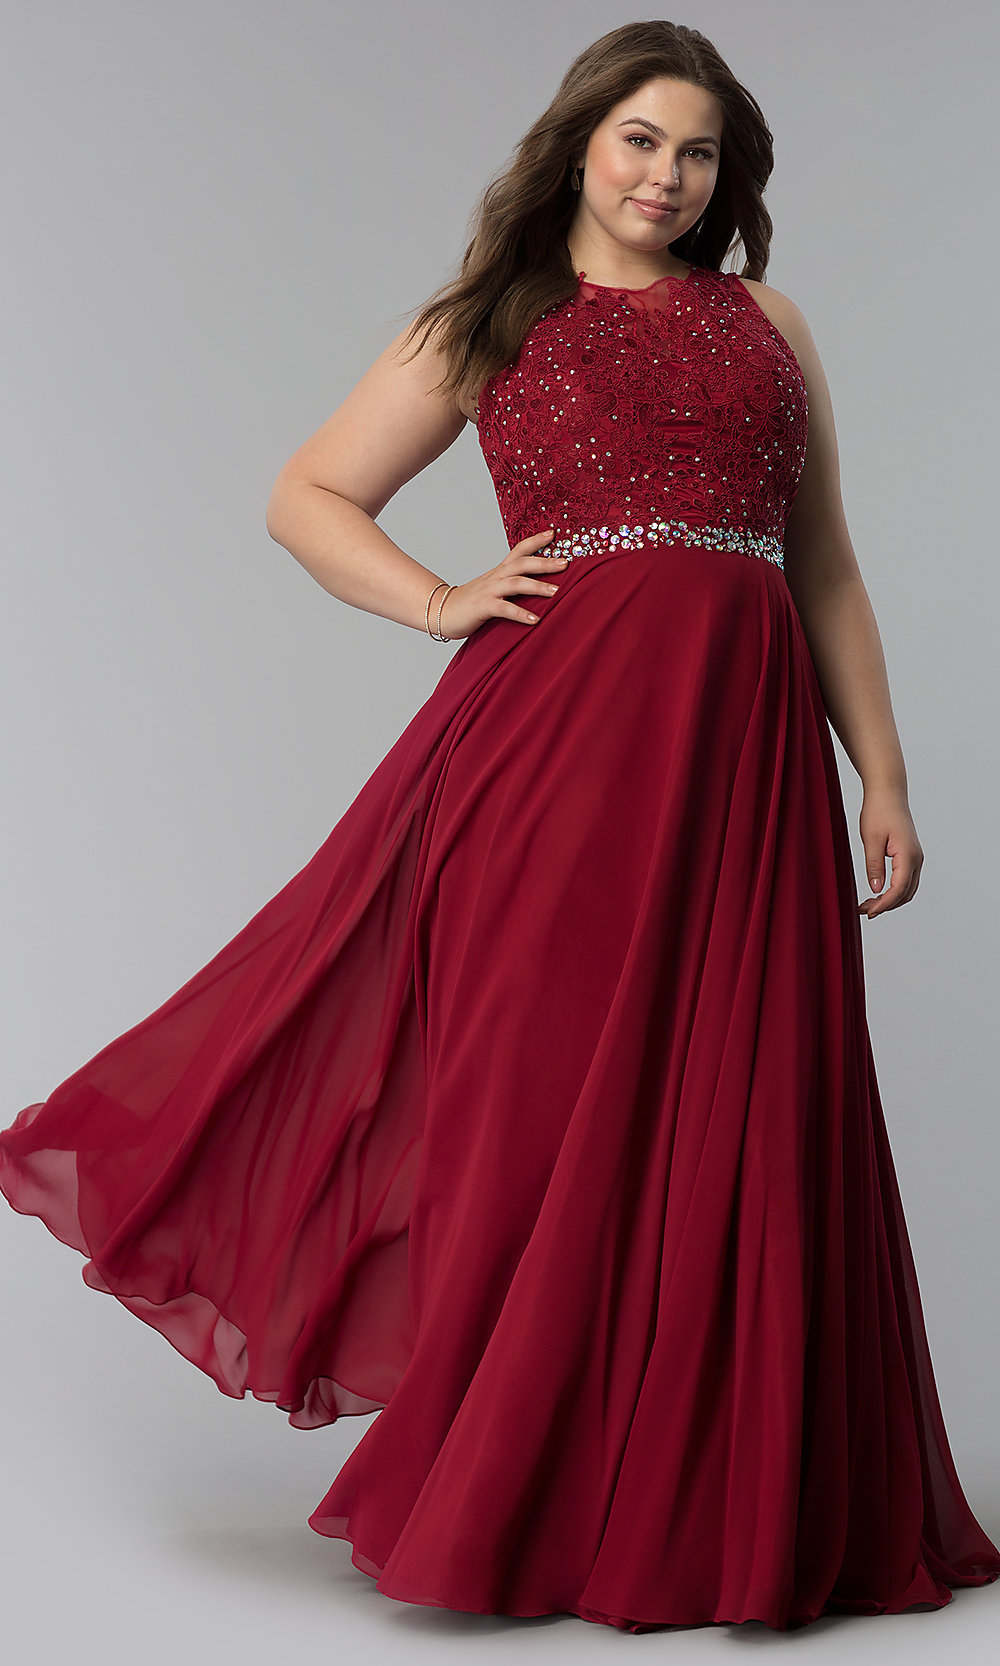 ... scoop-neck lace-bodice long prom dress. Style. Tap to expand 584f53f76